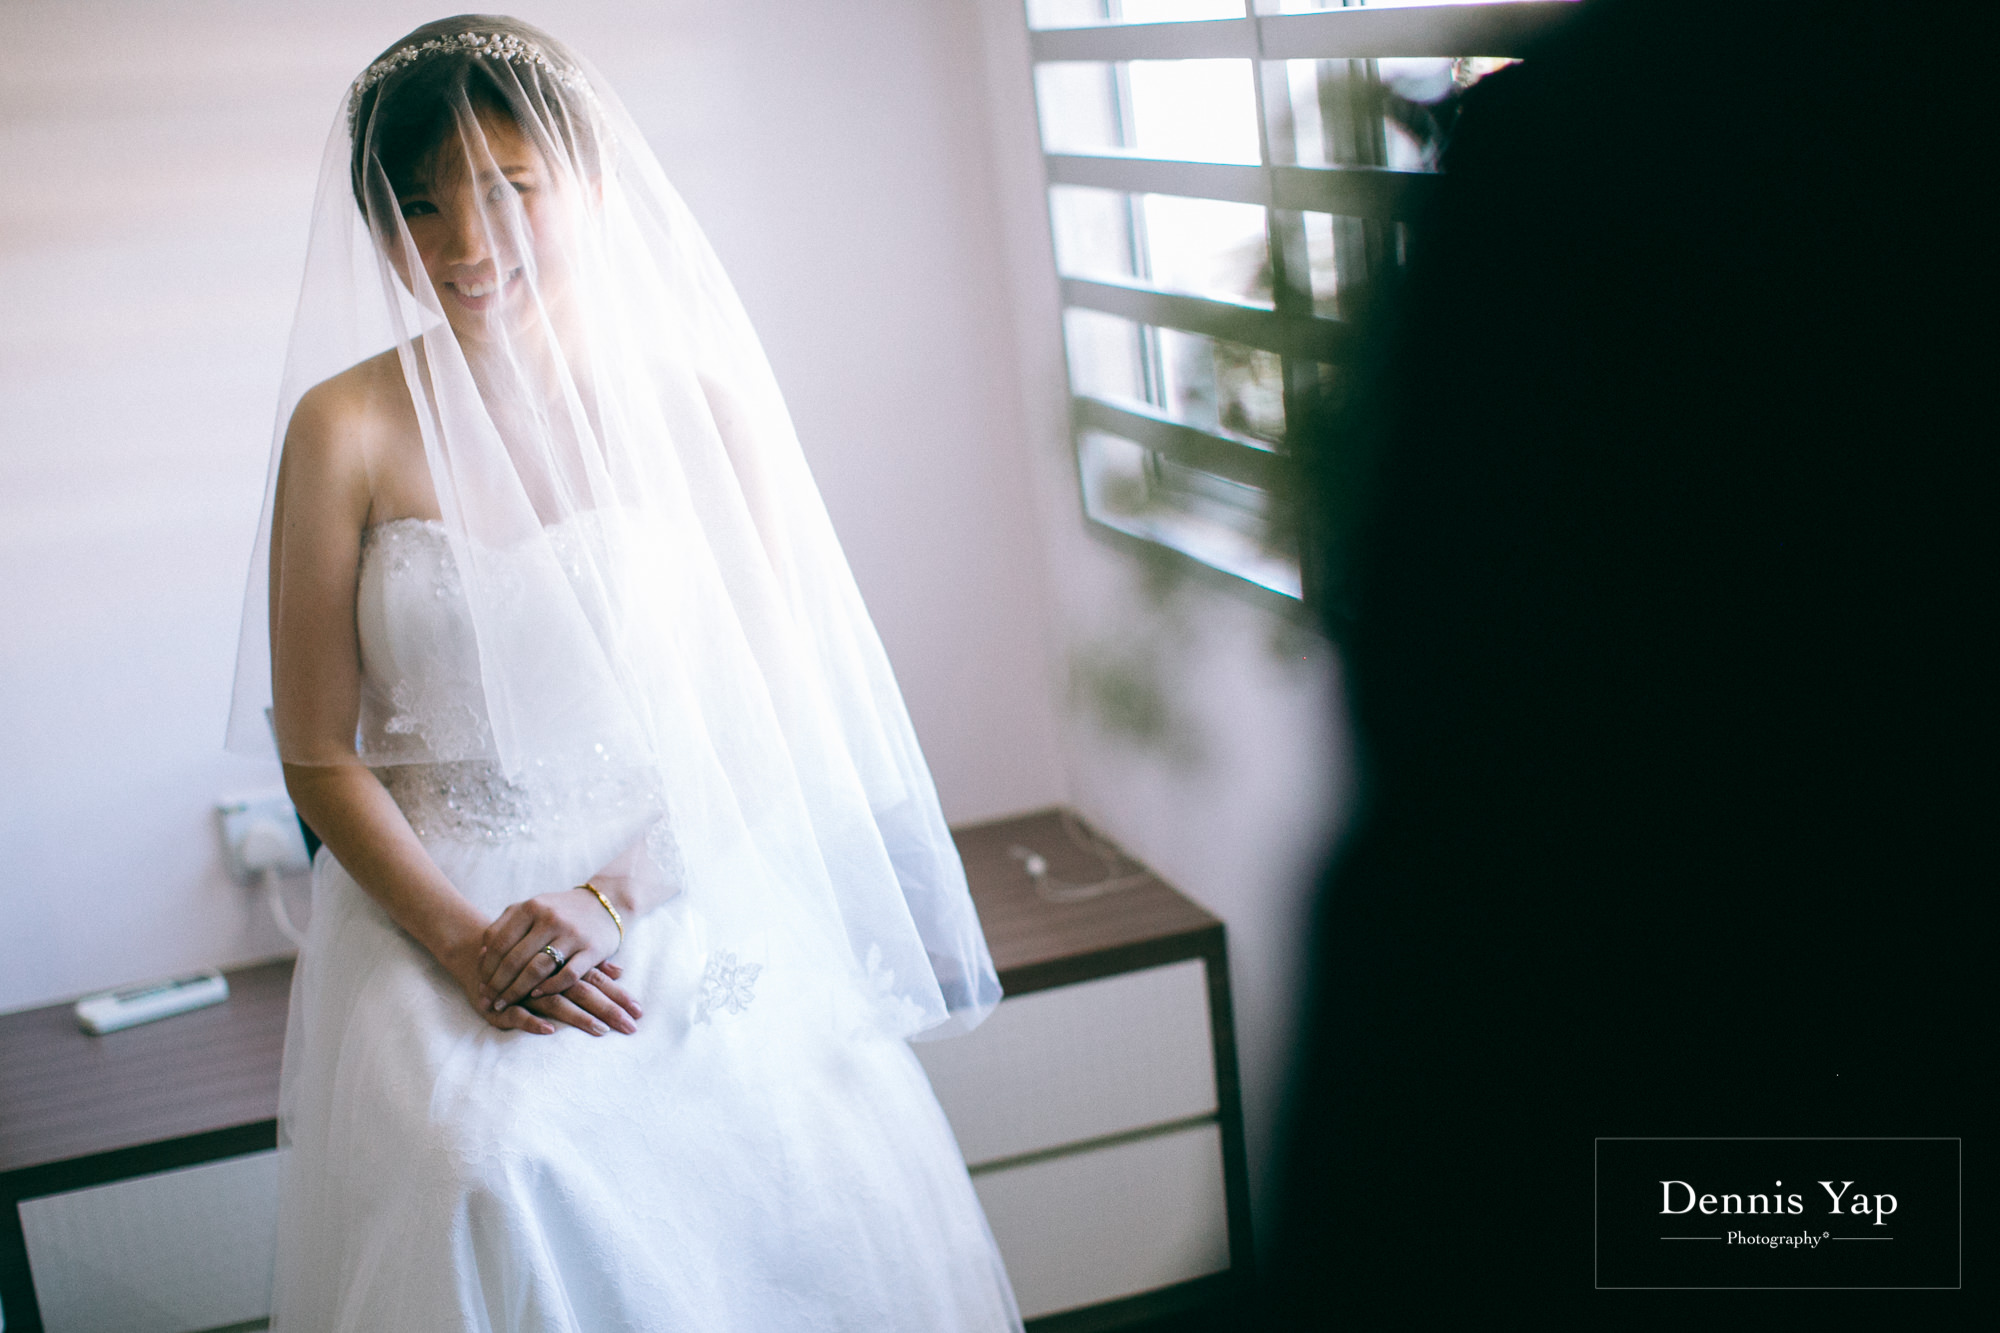 muy lip lee ting wedding day ipoh dennis yap photography -7.jpg